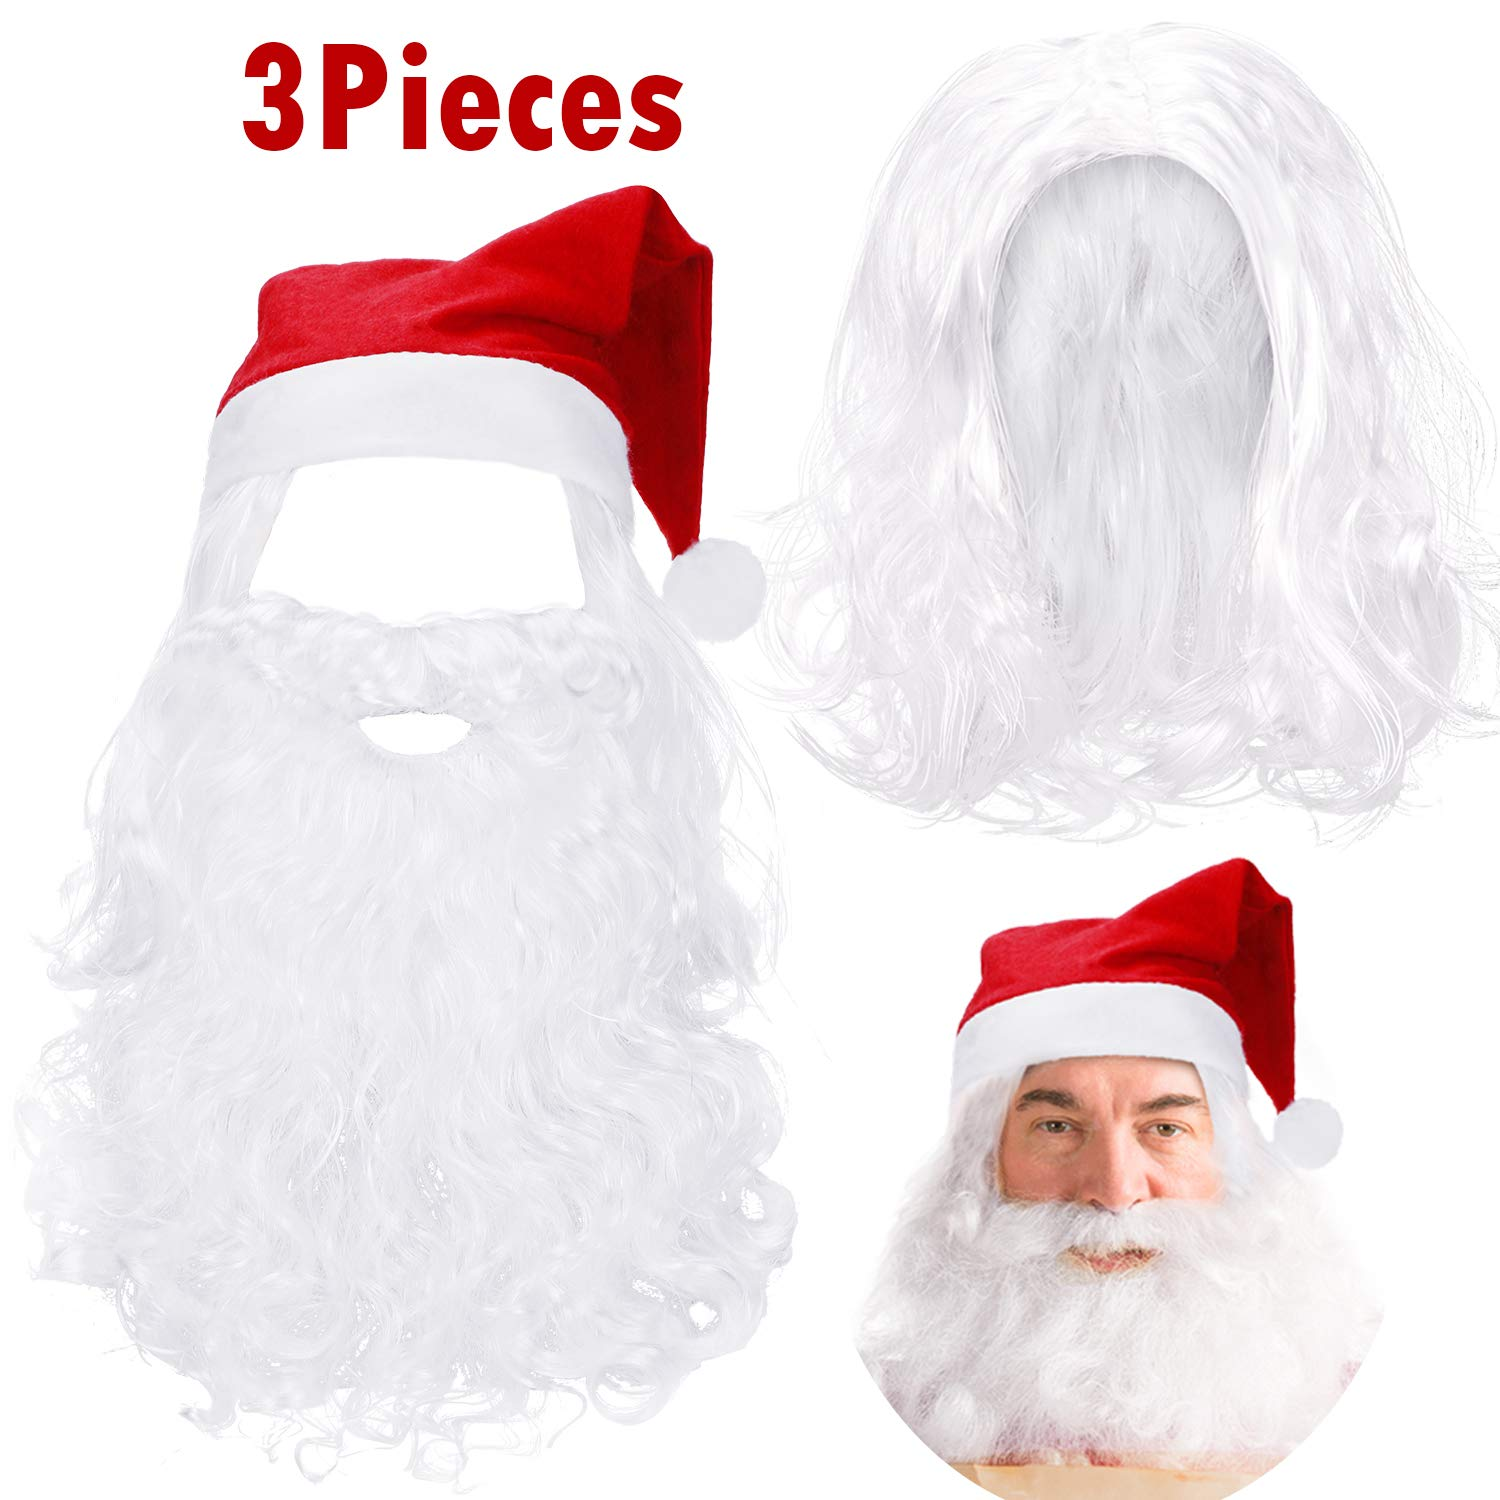 Christmas Wig Set Santa Claus Wig White Long Santa Beard and Christmas Hat for Christmas Party Costume by WILLBOND